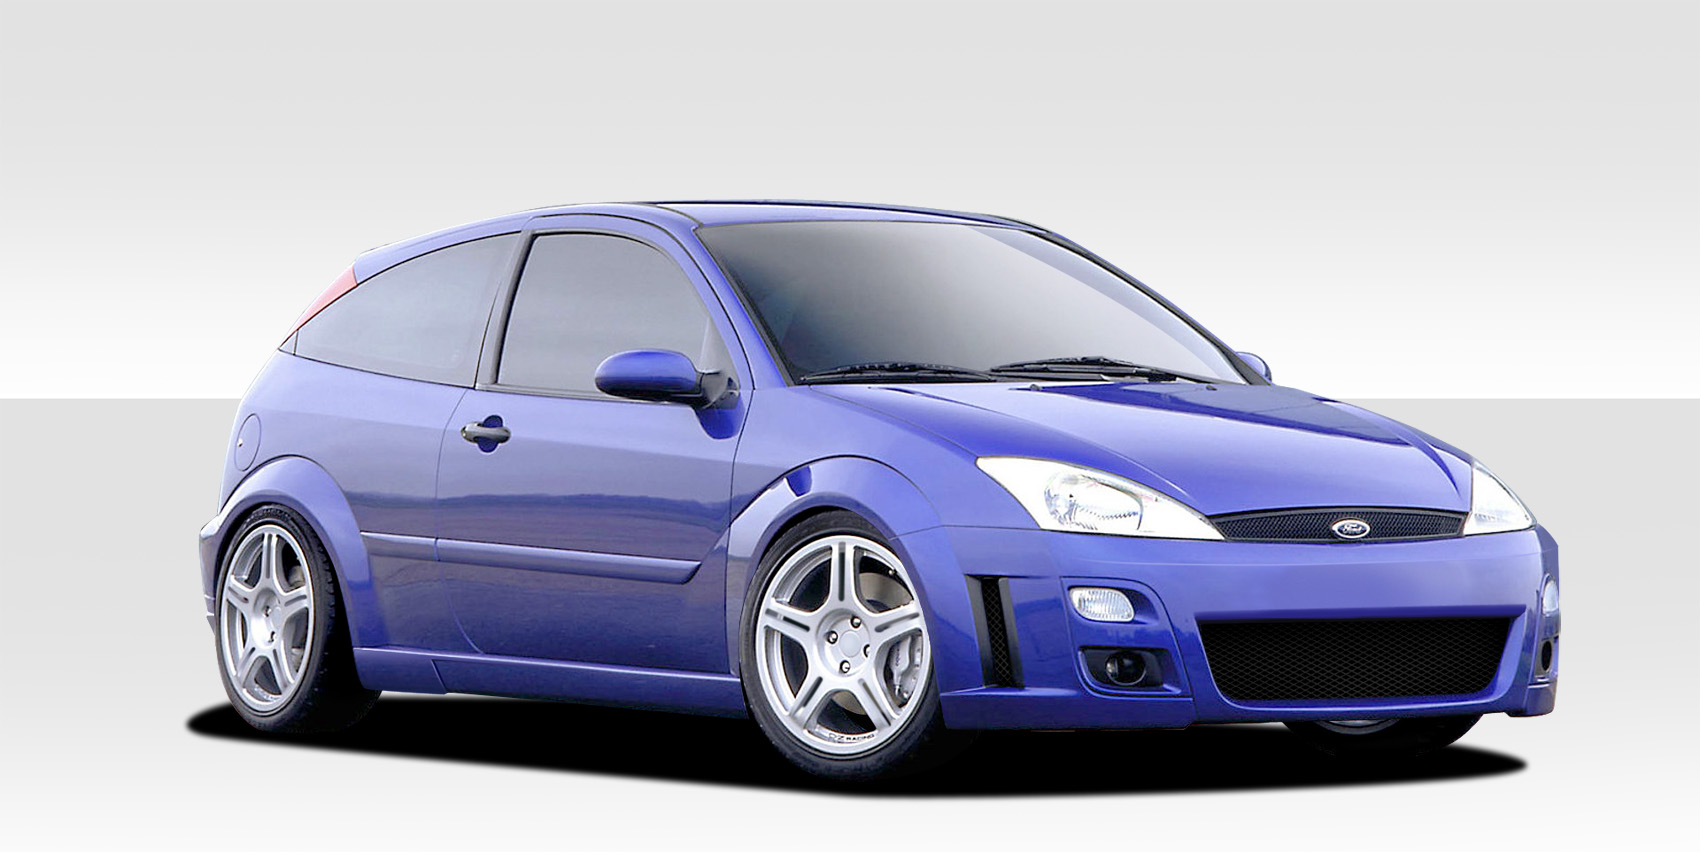 2003 Ford Focus Hb Kit Body Kit 2000 2004 Ford Focus Hb Zx3 Zx5